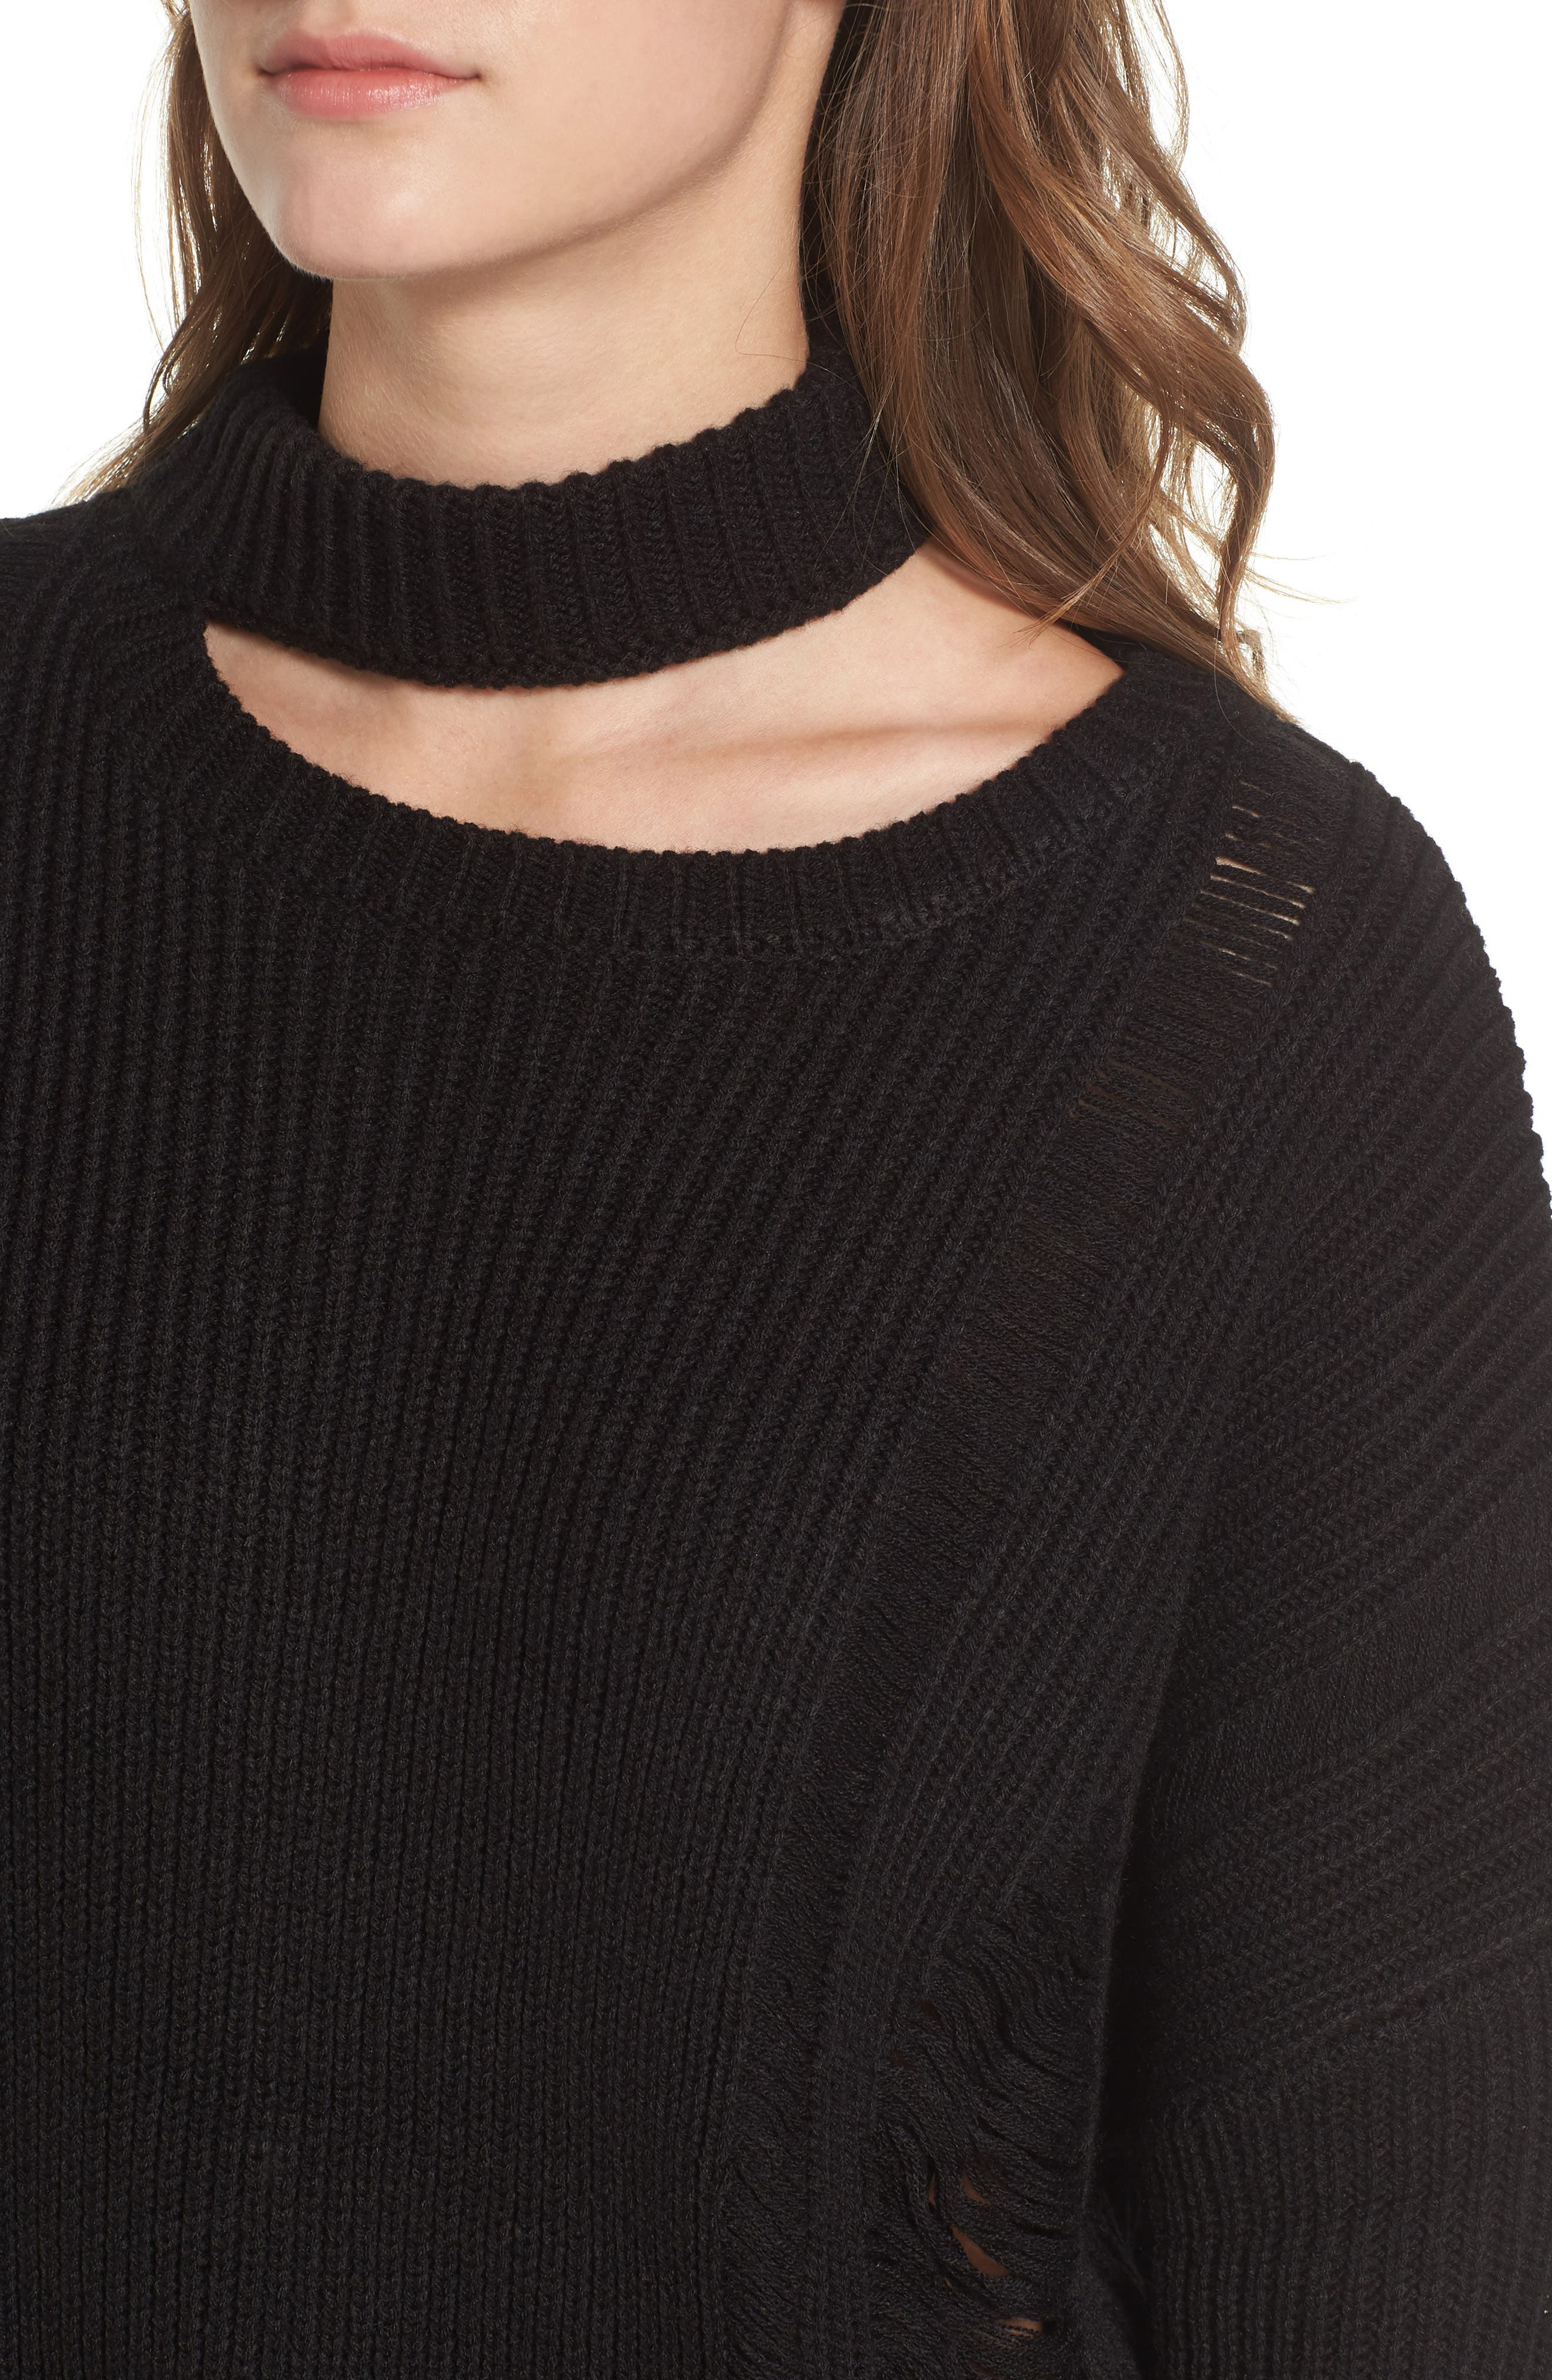 Destroyed Sweater,                             Alternate thumbnail 4, color,                             001